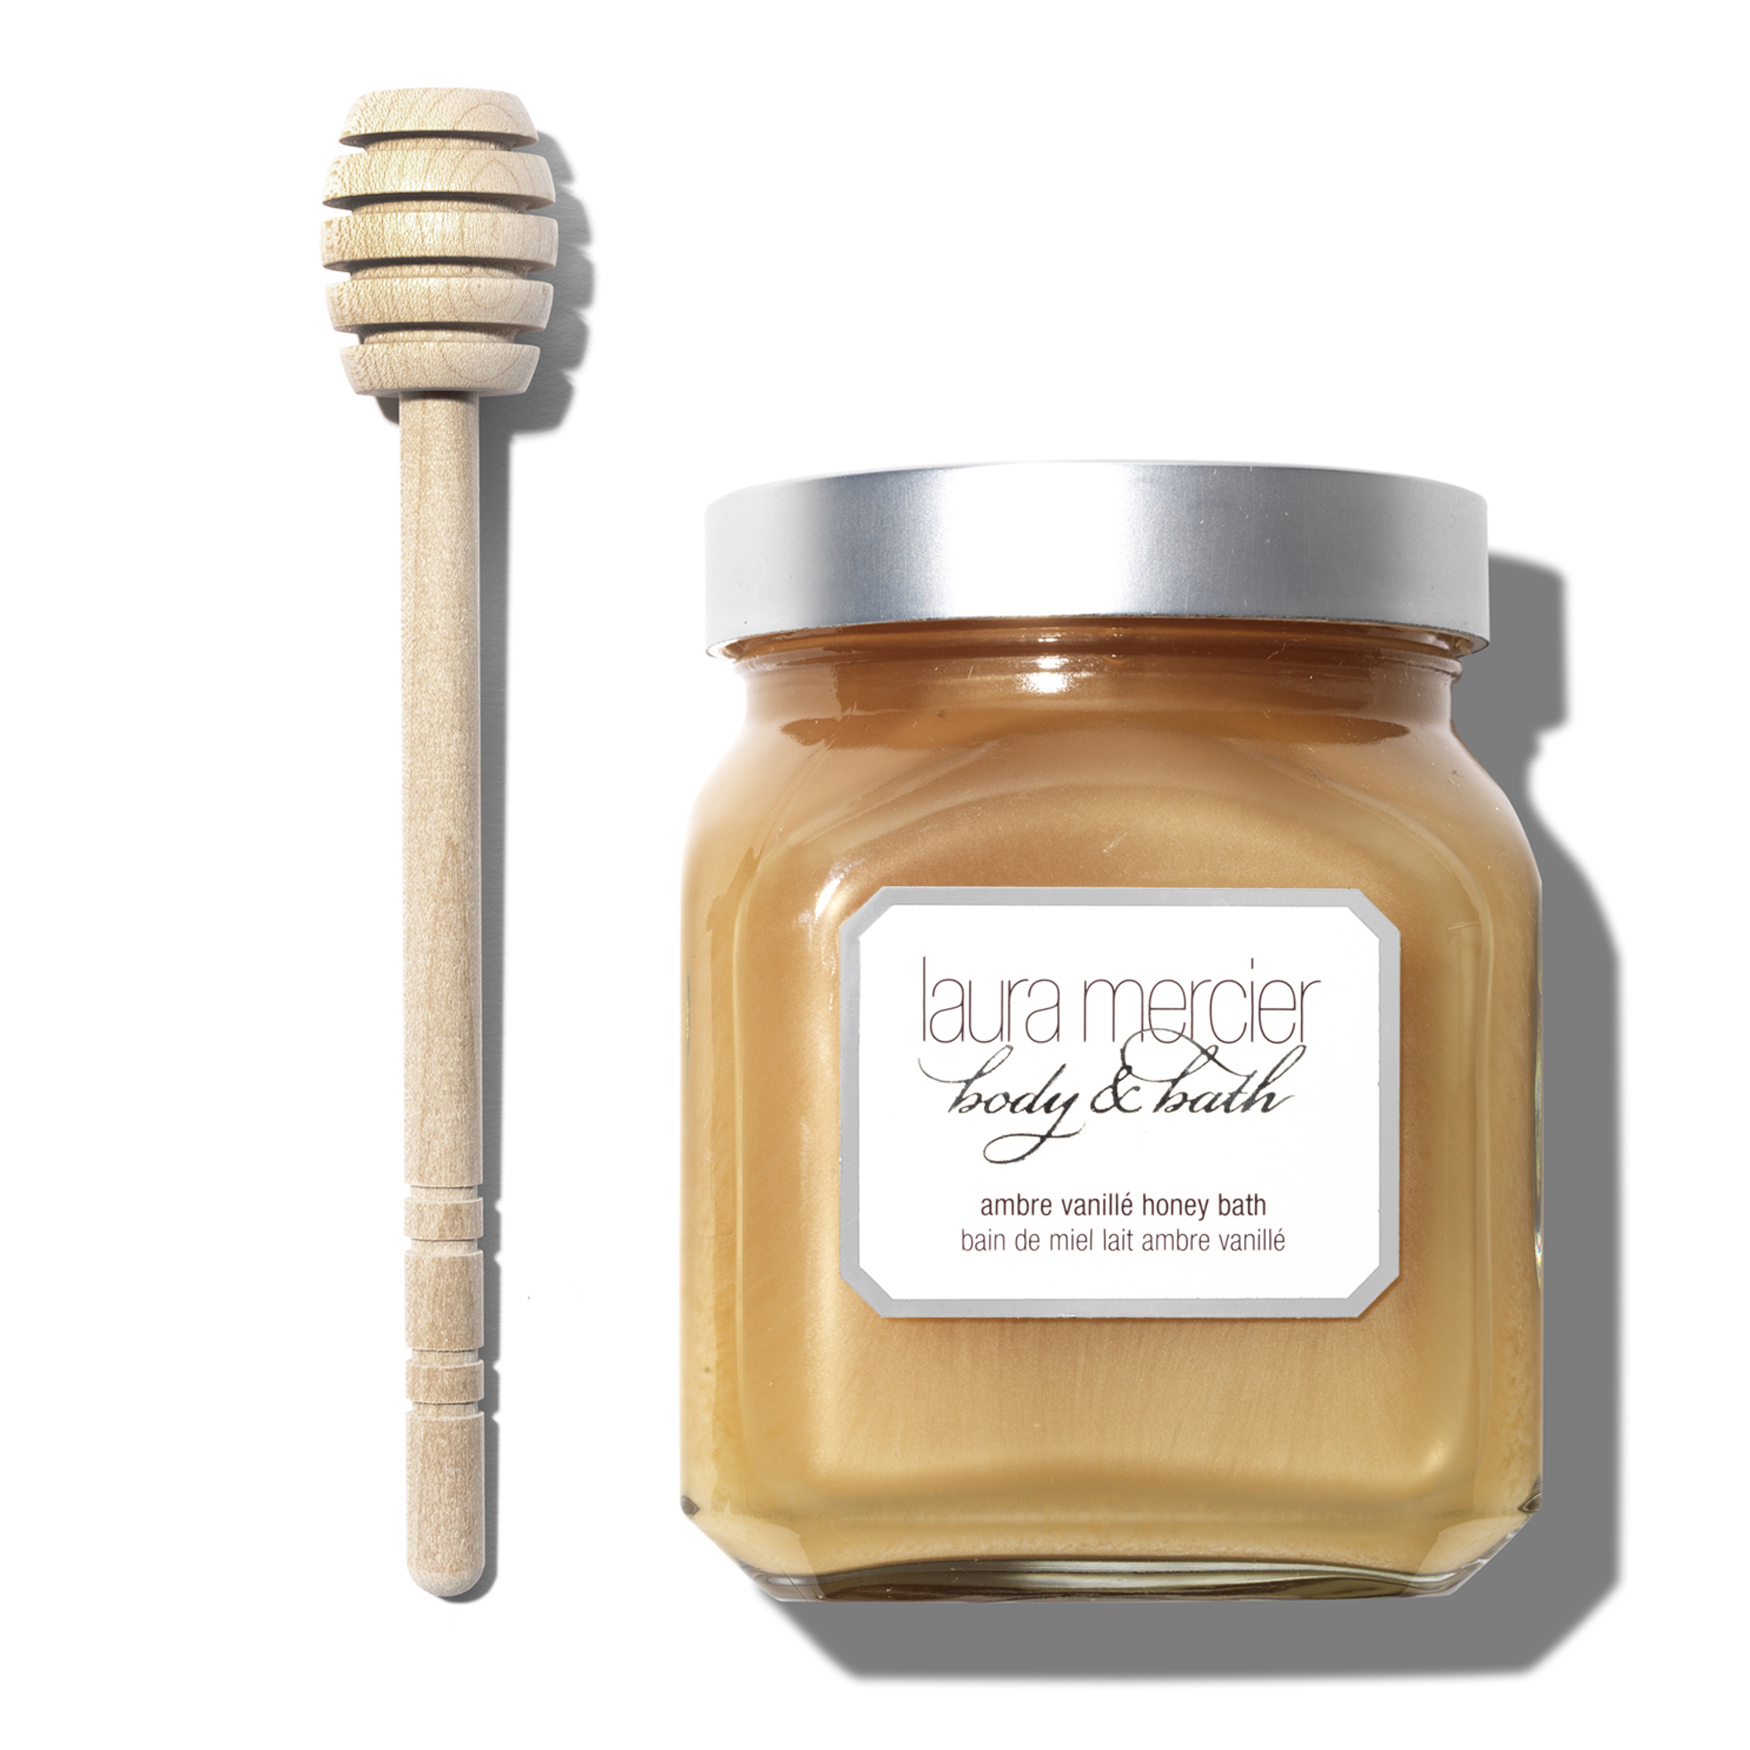 https://www.johnlewis.com/laura-mercier-ambre-vanille-honey-bath-300g/p231671360